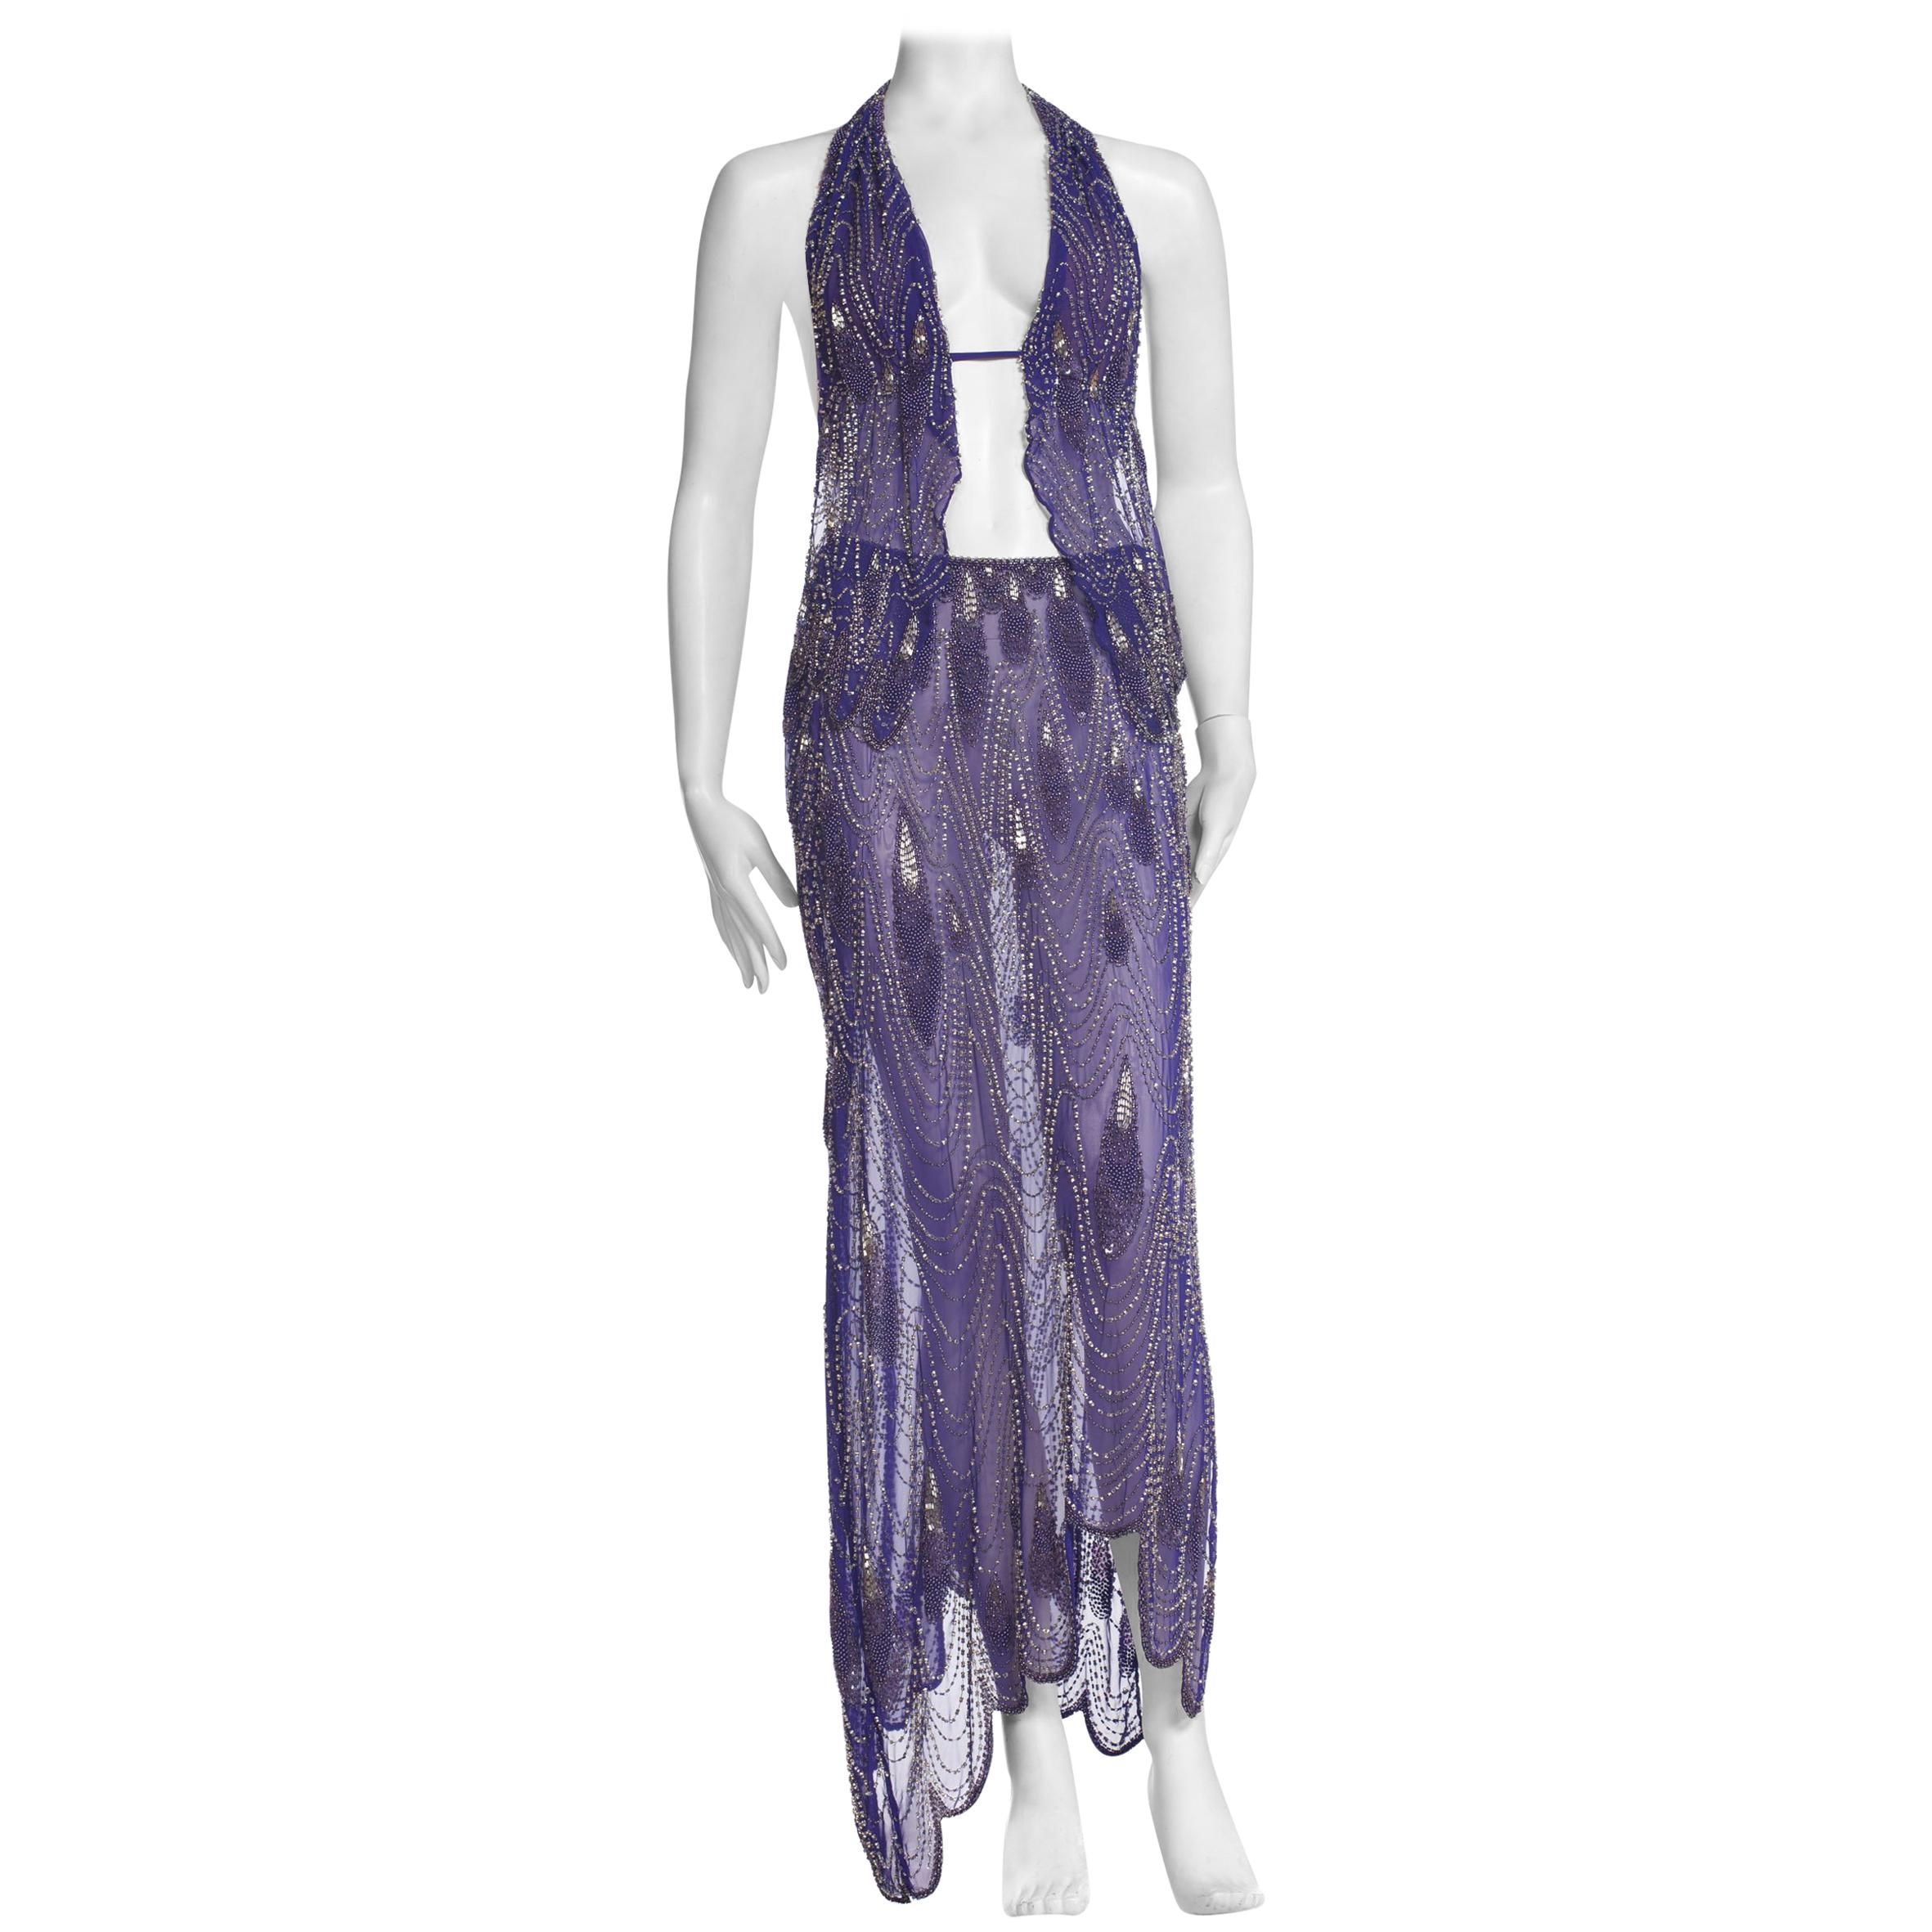 Morphew Collection Cher-Inspired 1970s Beaded Silk Purple Two Piece Ensemble